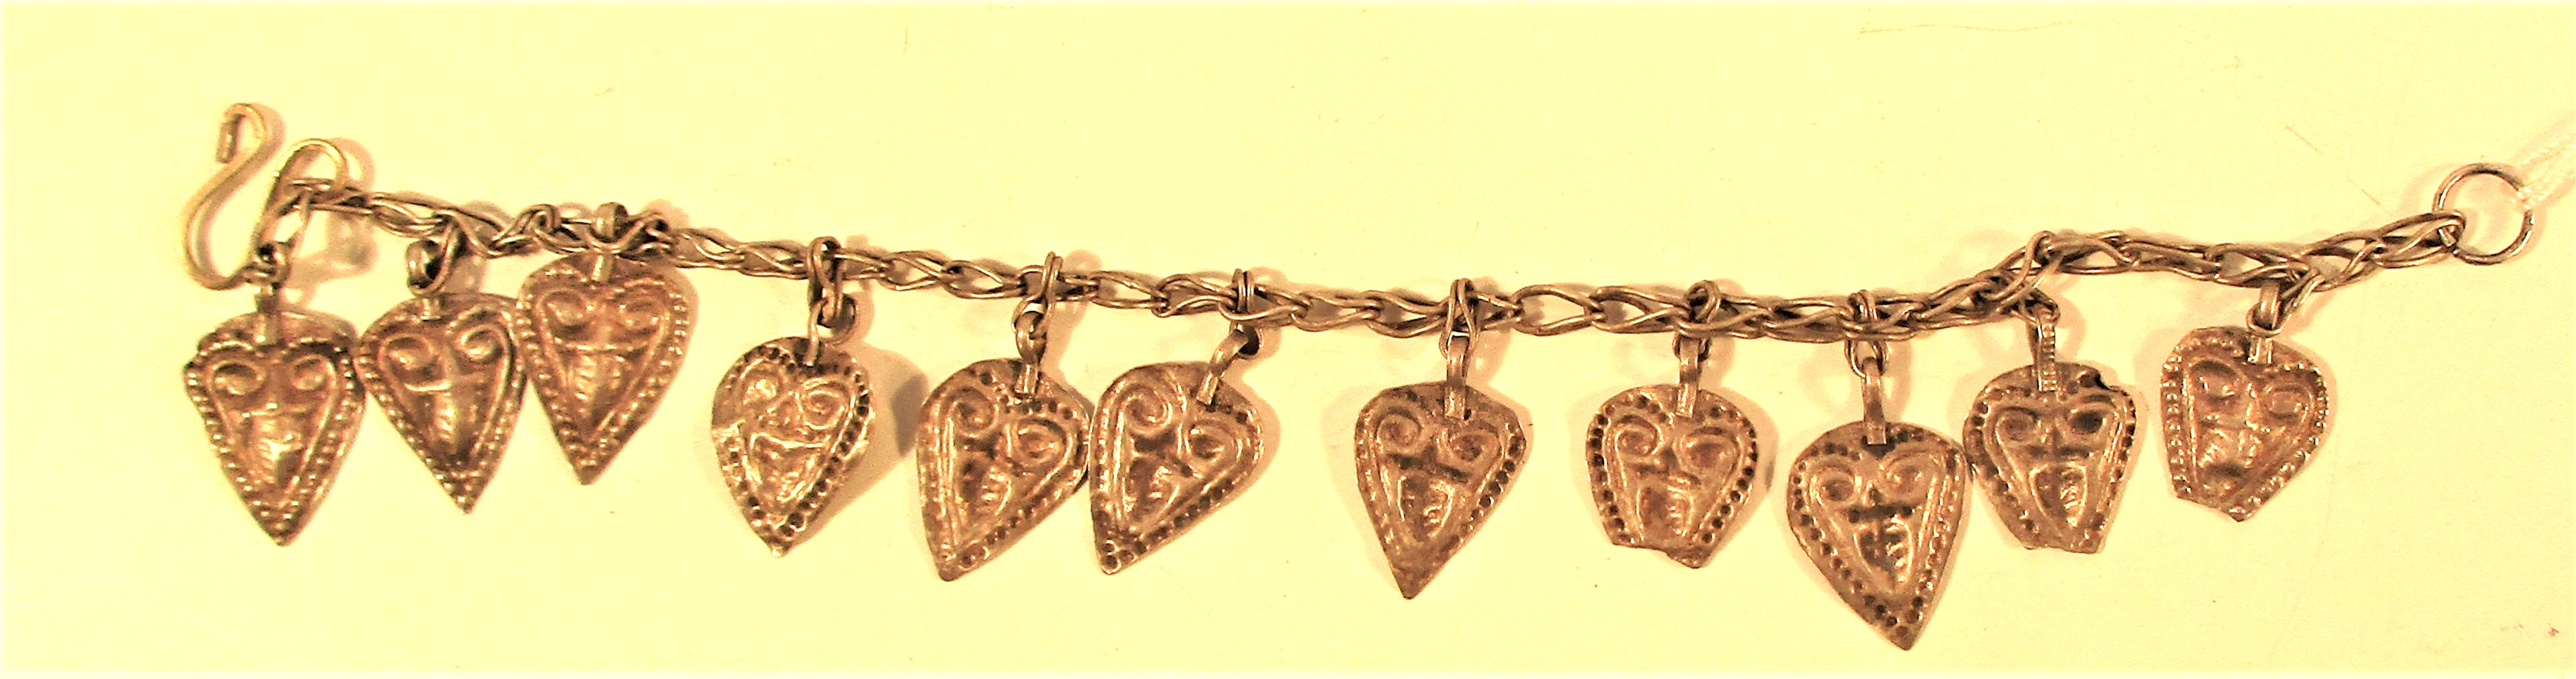 Bracelet from chain and drops. 20cm.